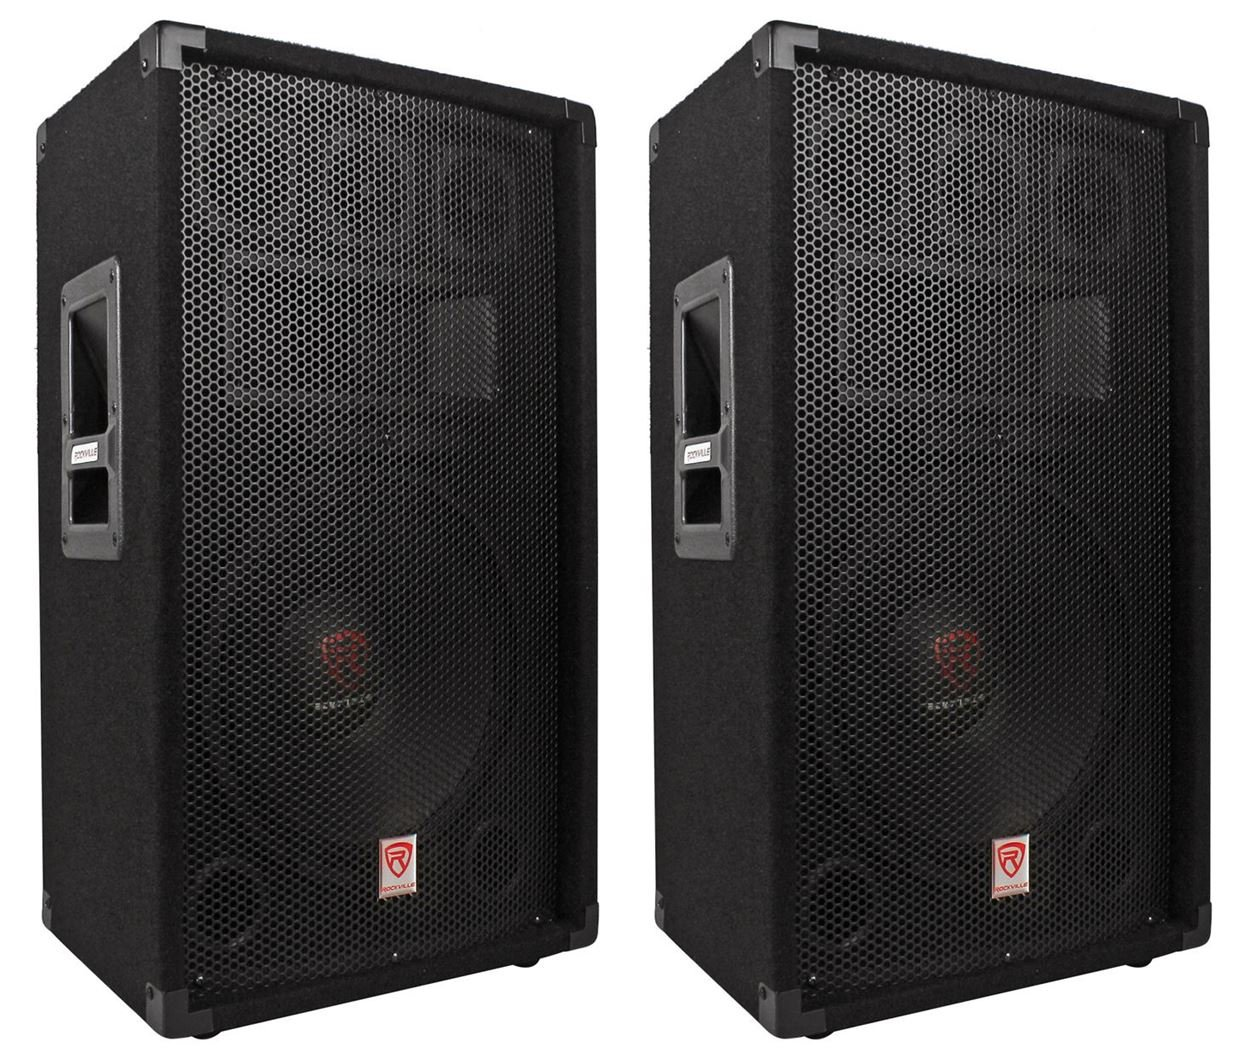 (2) Rockville RSG12.4 12 3-Way 1000 Watt 4-Ohm Passive DJ/Pro Audio PA Speakers (2) RSG12.4